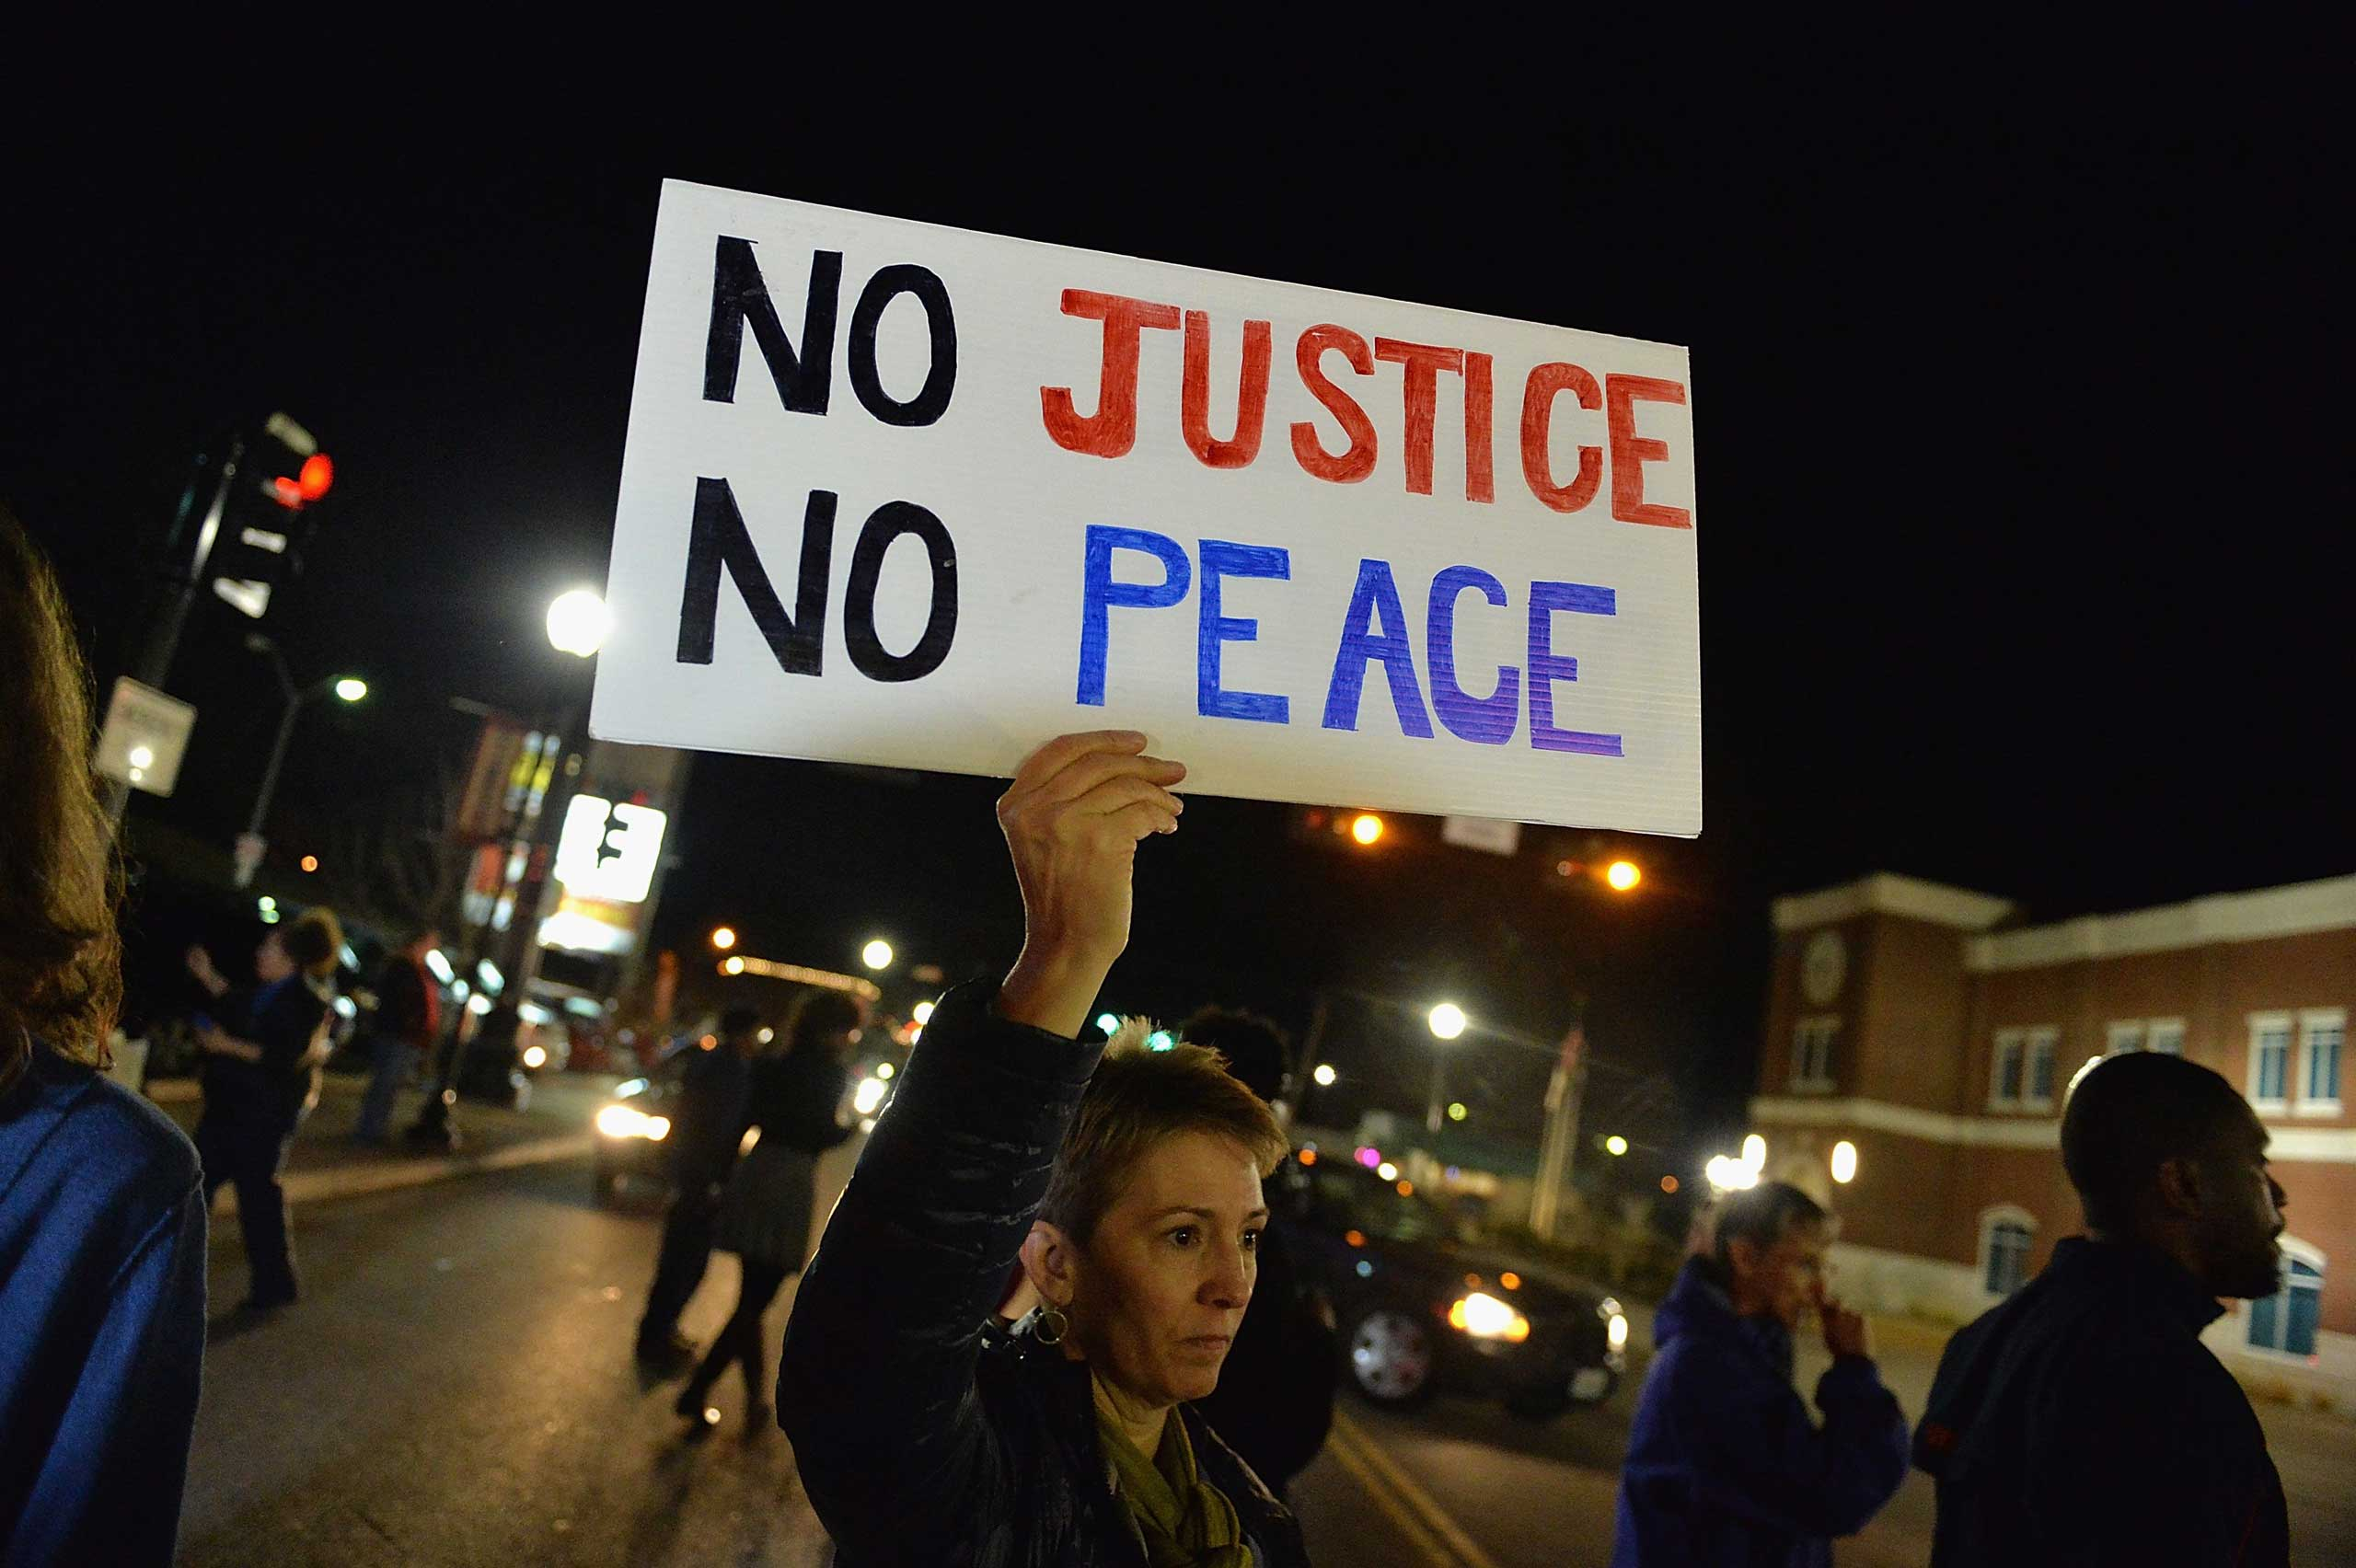 Protestors hold signs during a protest outside the Ferguson Police Department on March 11, 2015 in Ferguson.